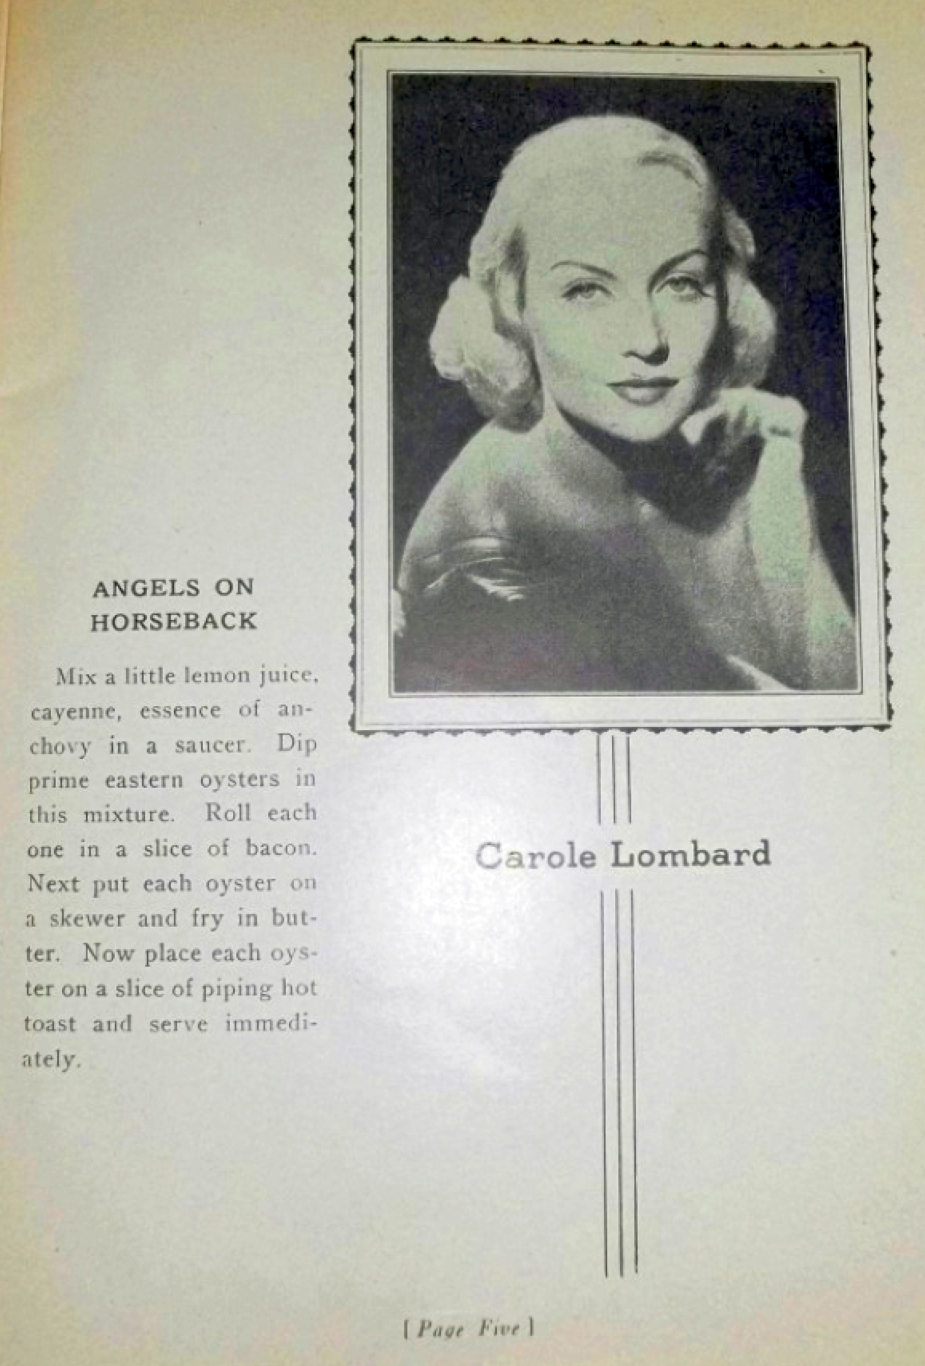 carole lombard foods and fashions of 1936 booklet 00b